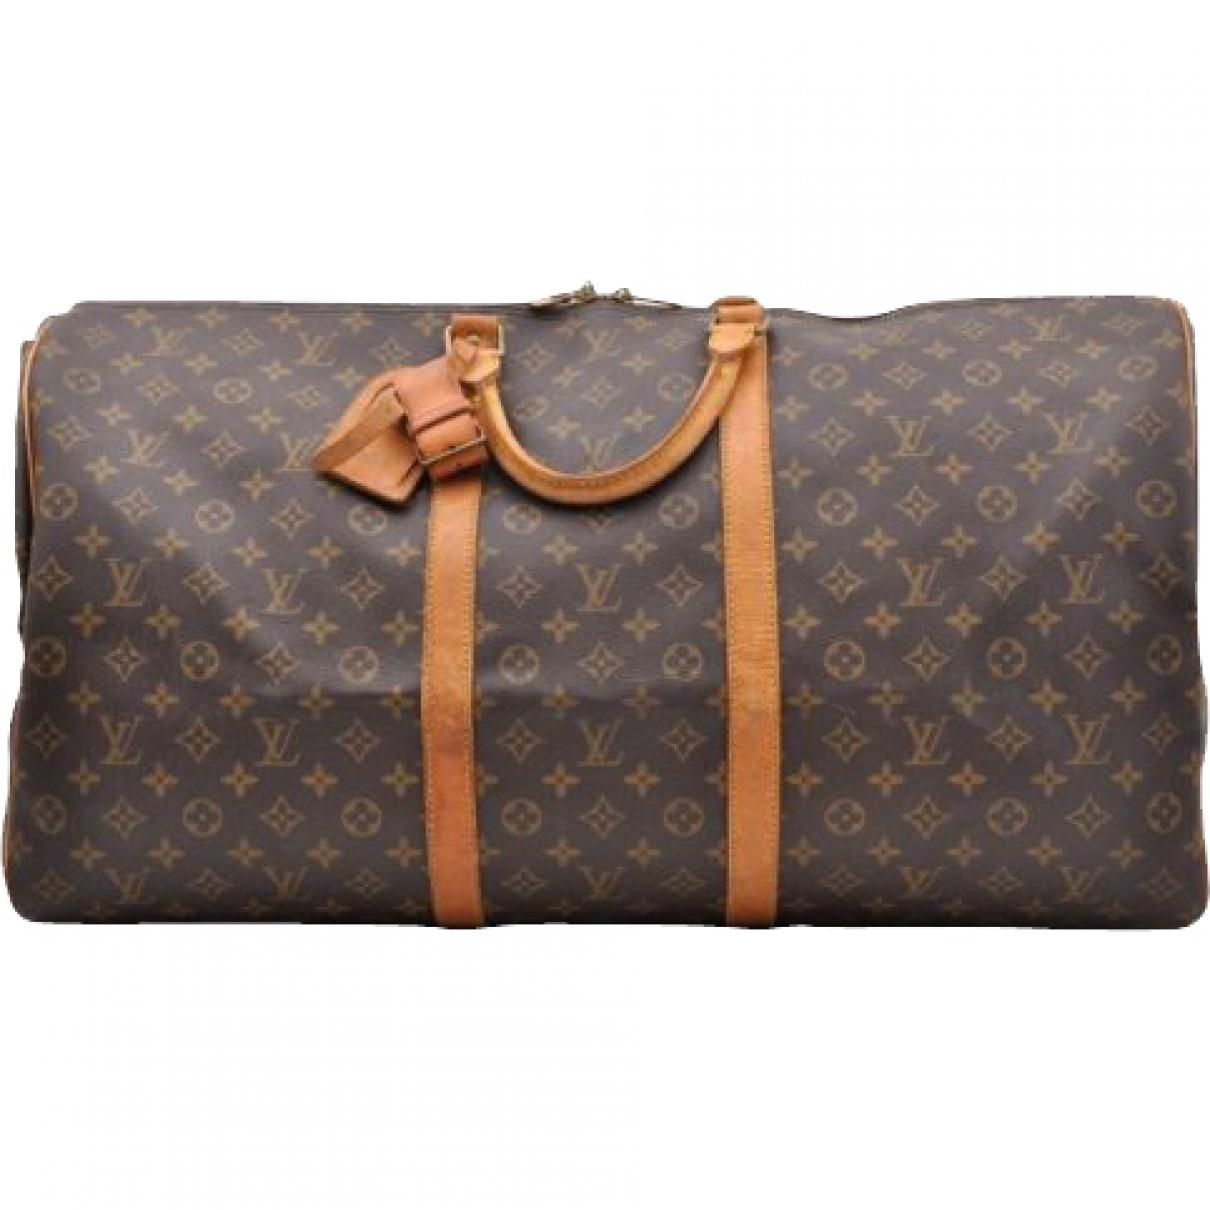 3b35814d94eb Lyst - Louis Vuitton Keepall Cloth Travel Bag in Brown - Save ...